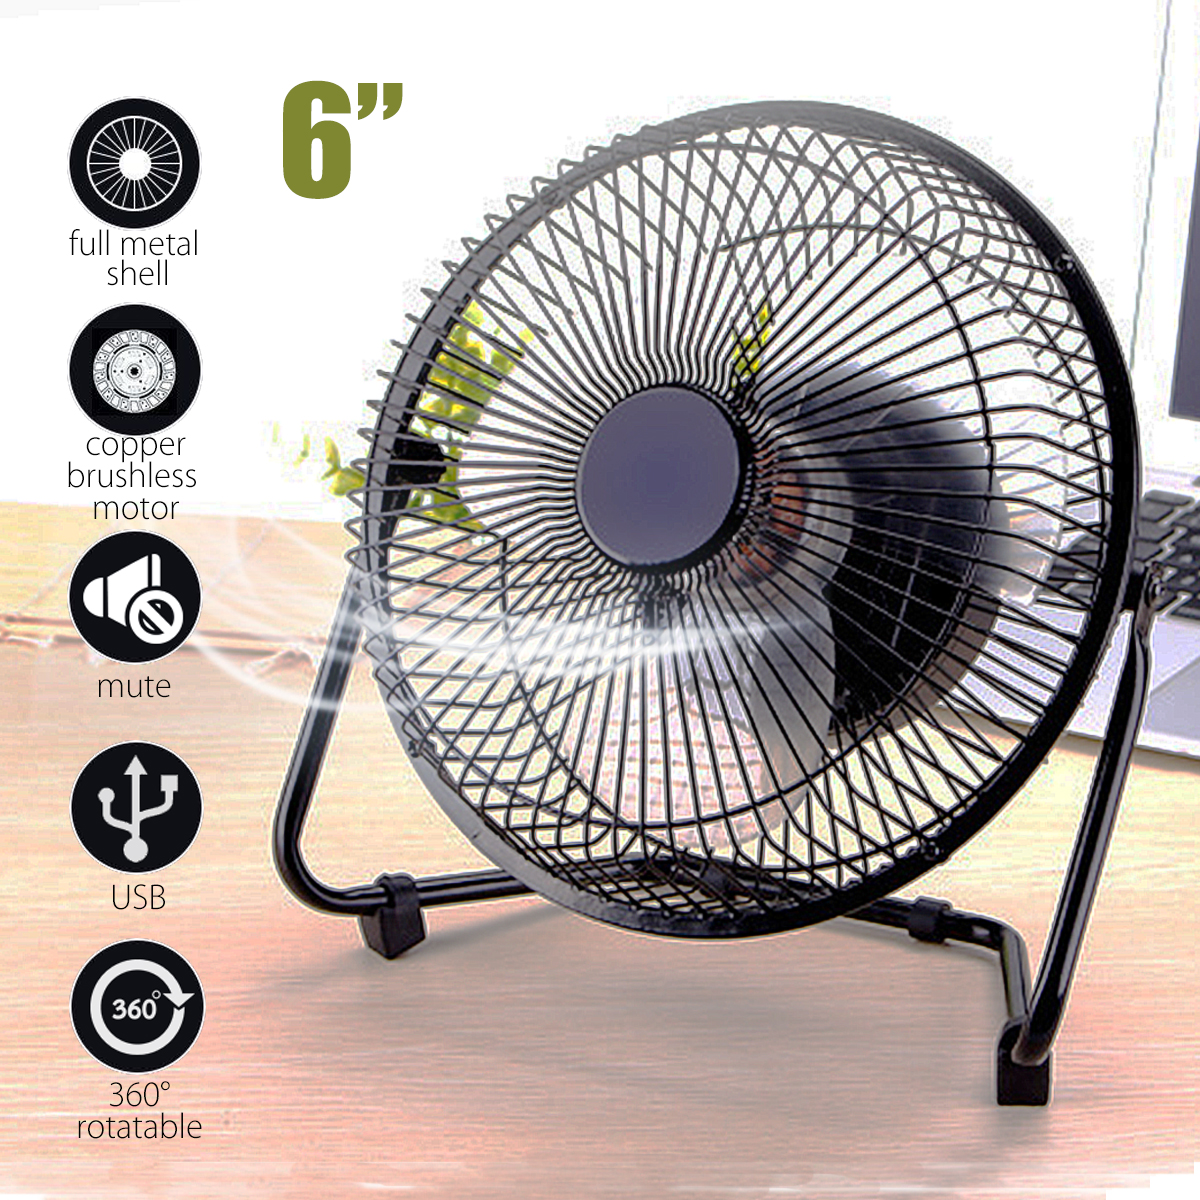 6'' Metal Cooling Fan Electrical 360° Rotatable air cooler USB Rechargeable Desk Cooler Fan with 2x 18650 Batteries